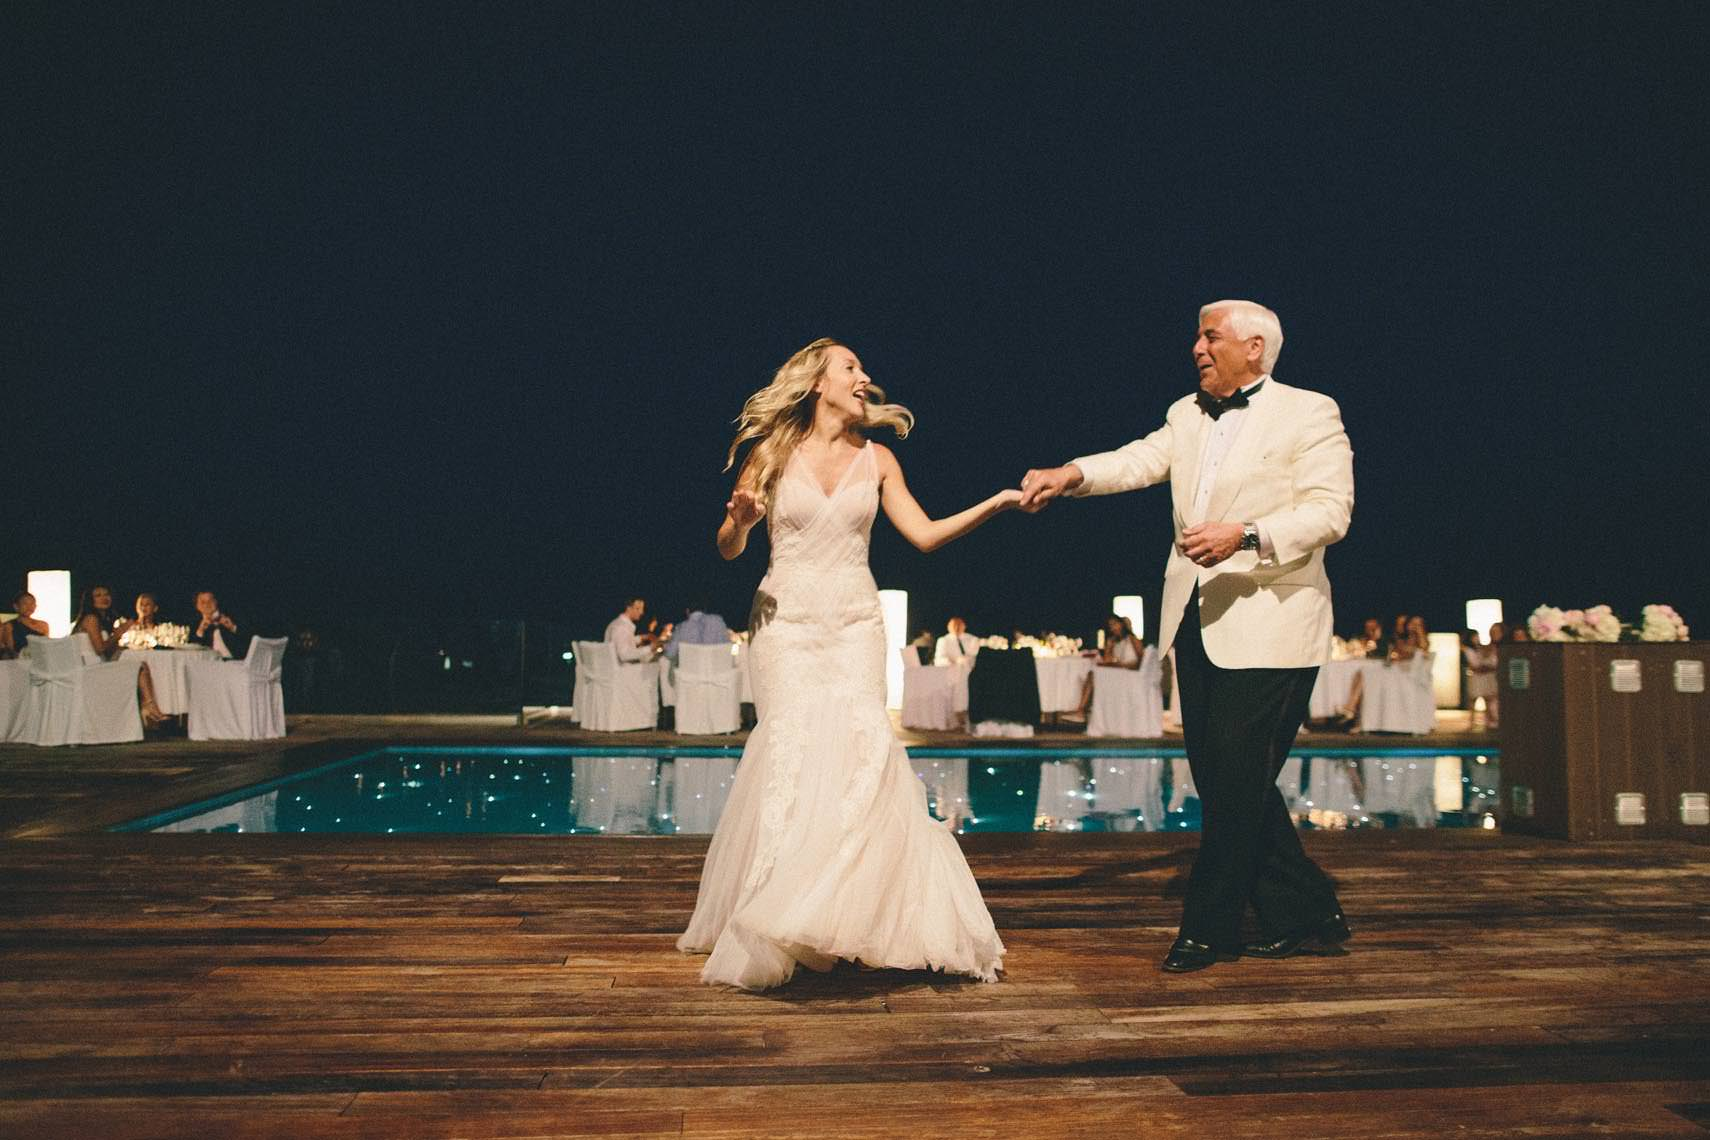 greece_wedding_photographer_skopelos078